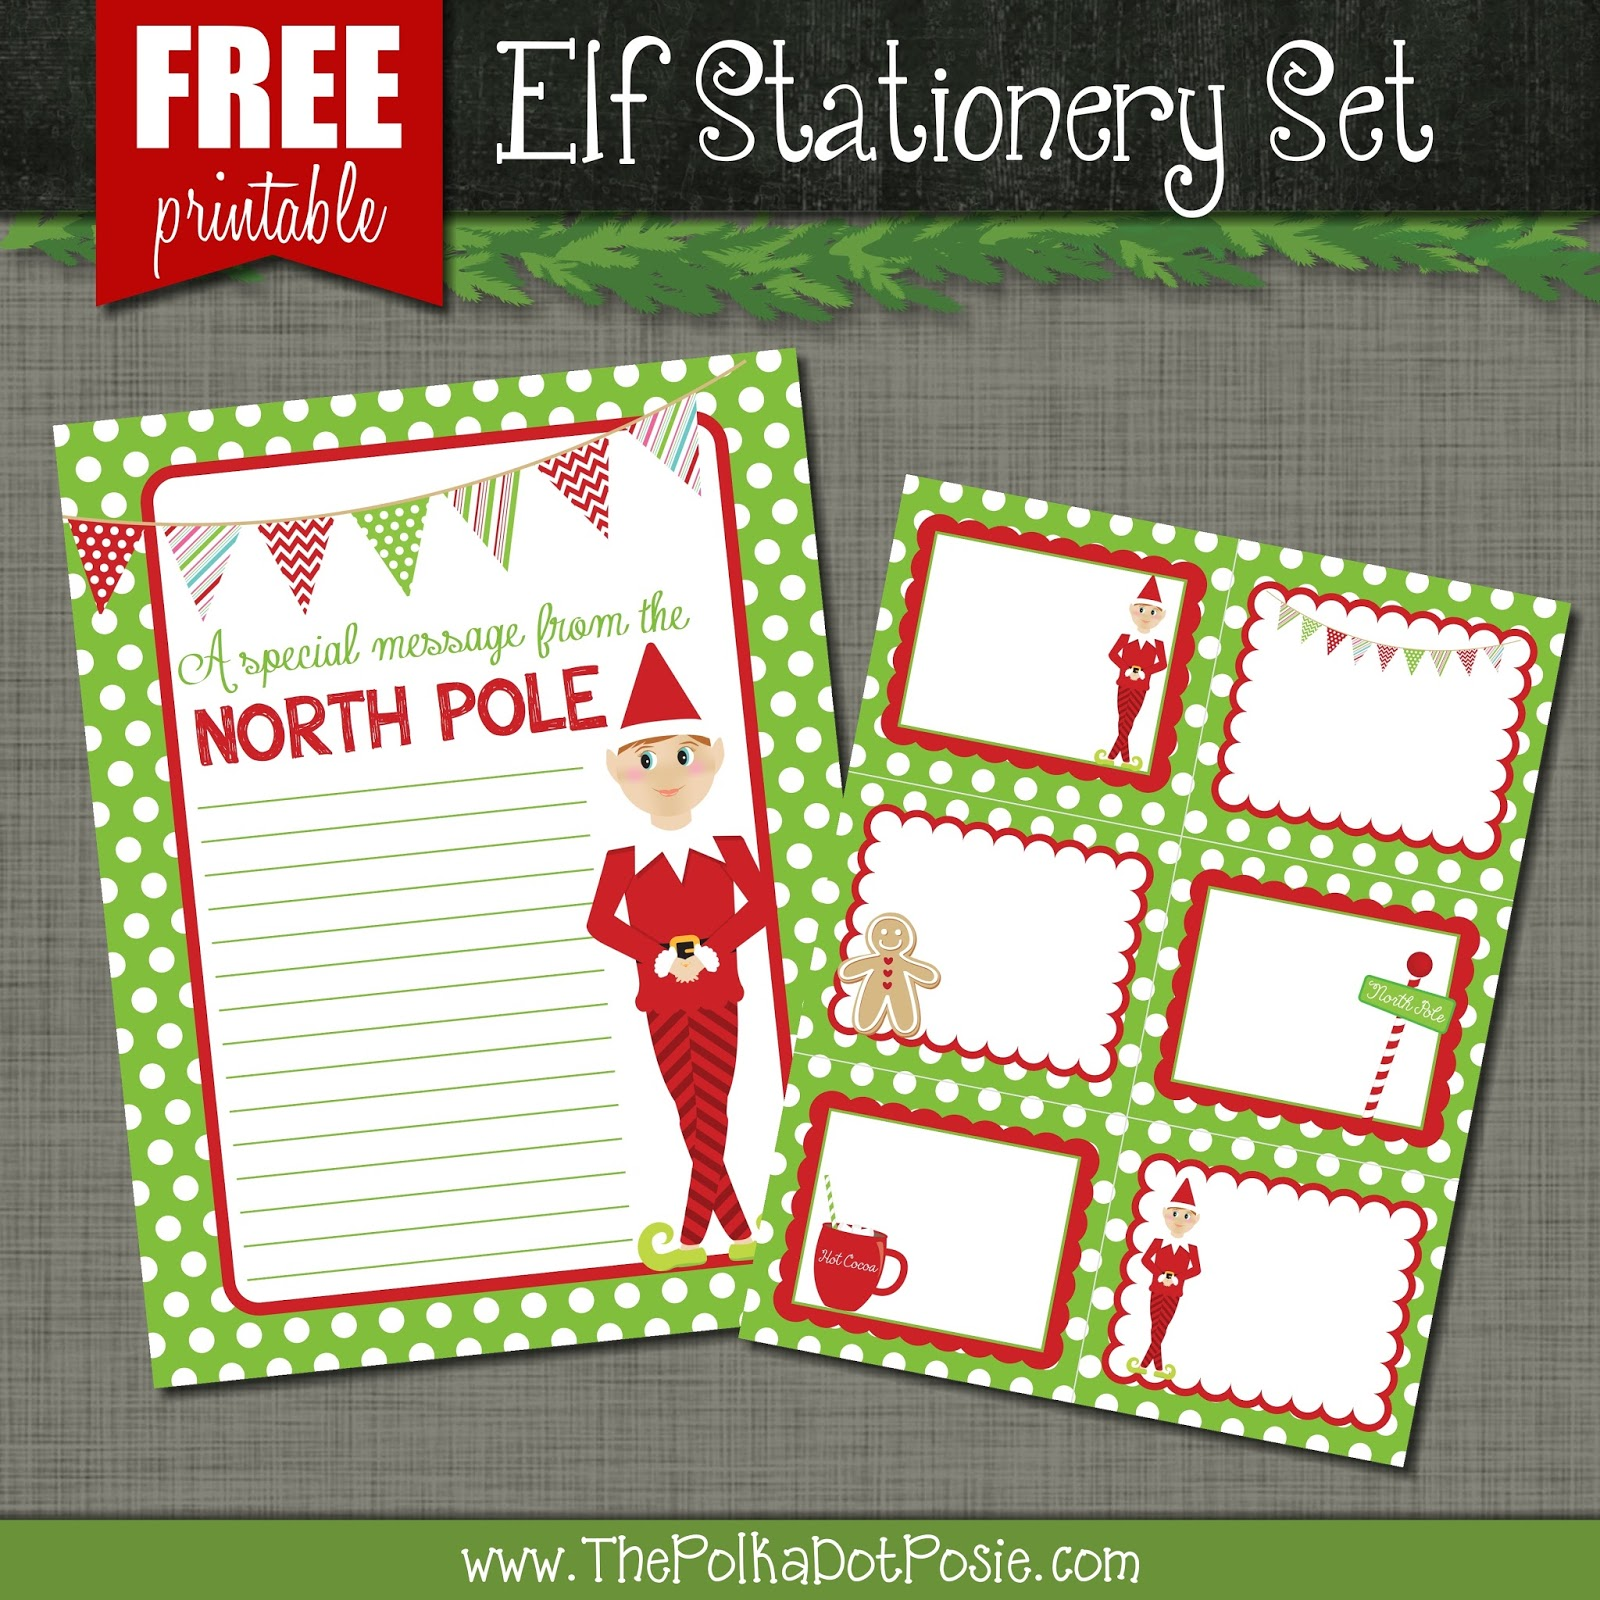 Elf On The Shelf Printable Stationary The polka dot posie: free ...